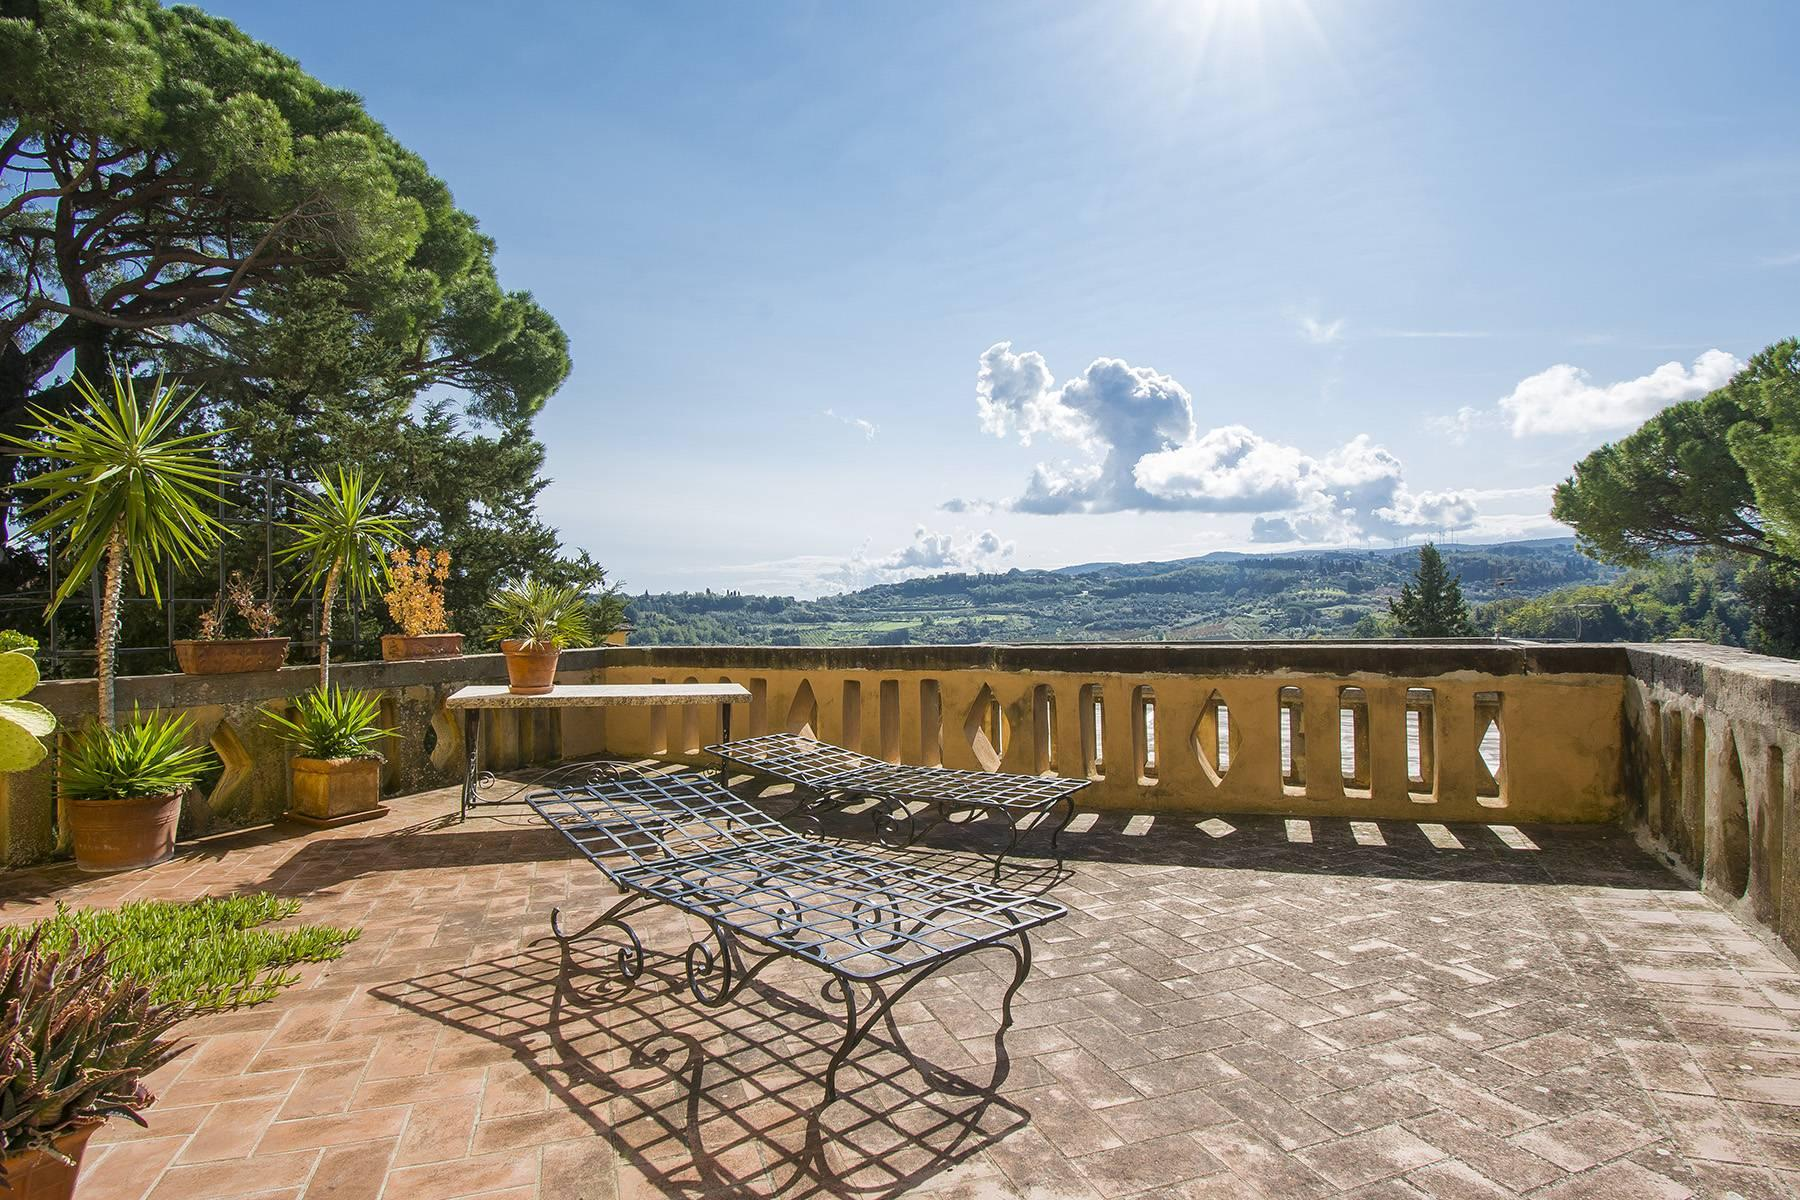 Charming Medicean Villa on the Tuscan hills - 2